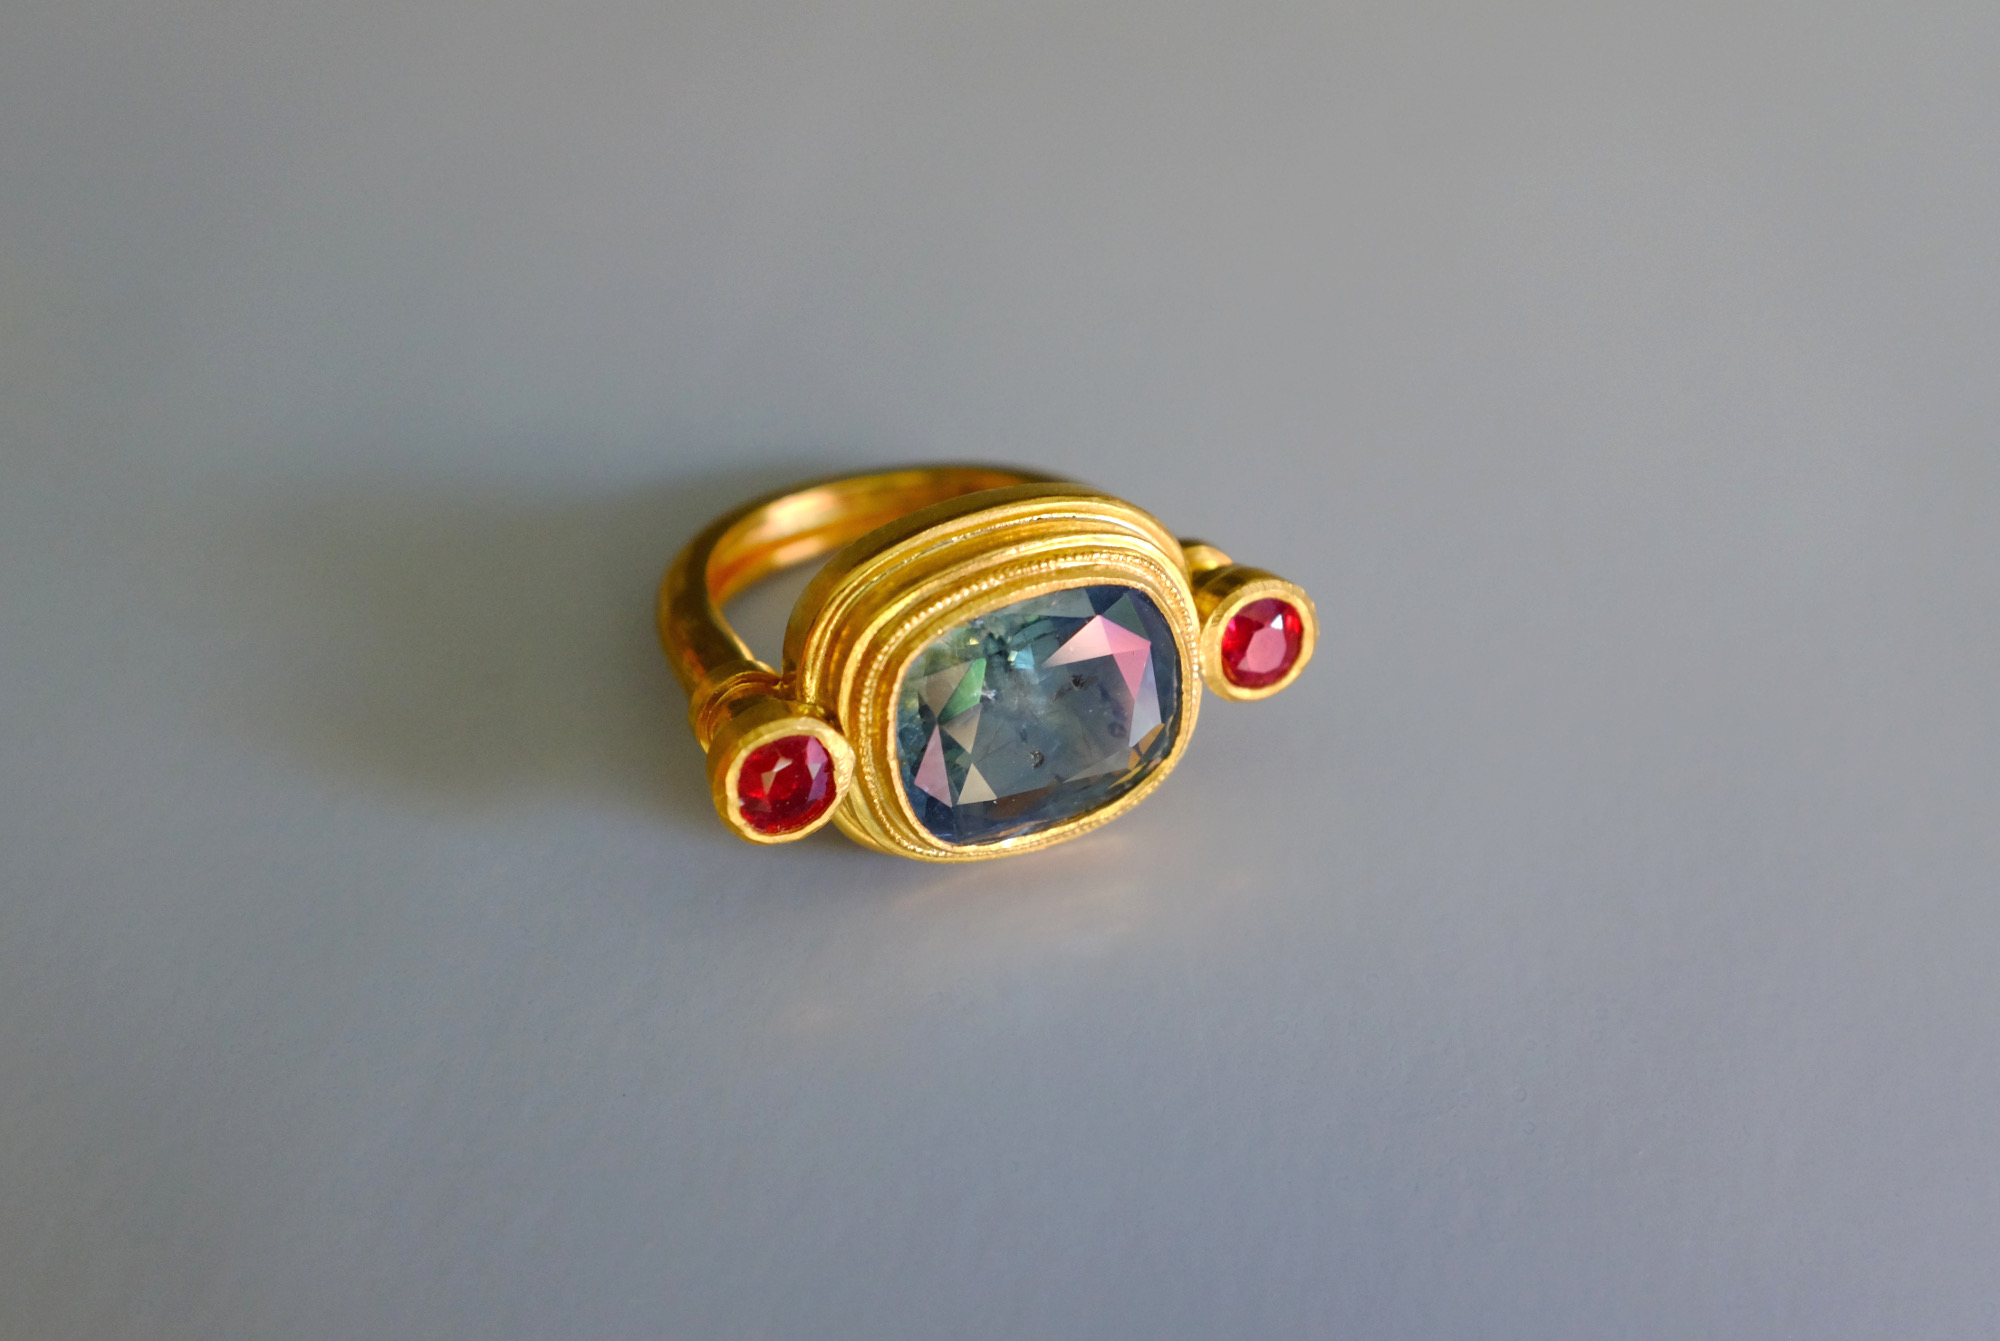 medieval style ring, ruby and sapphire gold ring, blue green sapphire ring, ancient Roman style rings, ancient Greek style rings